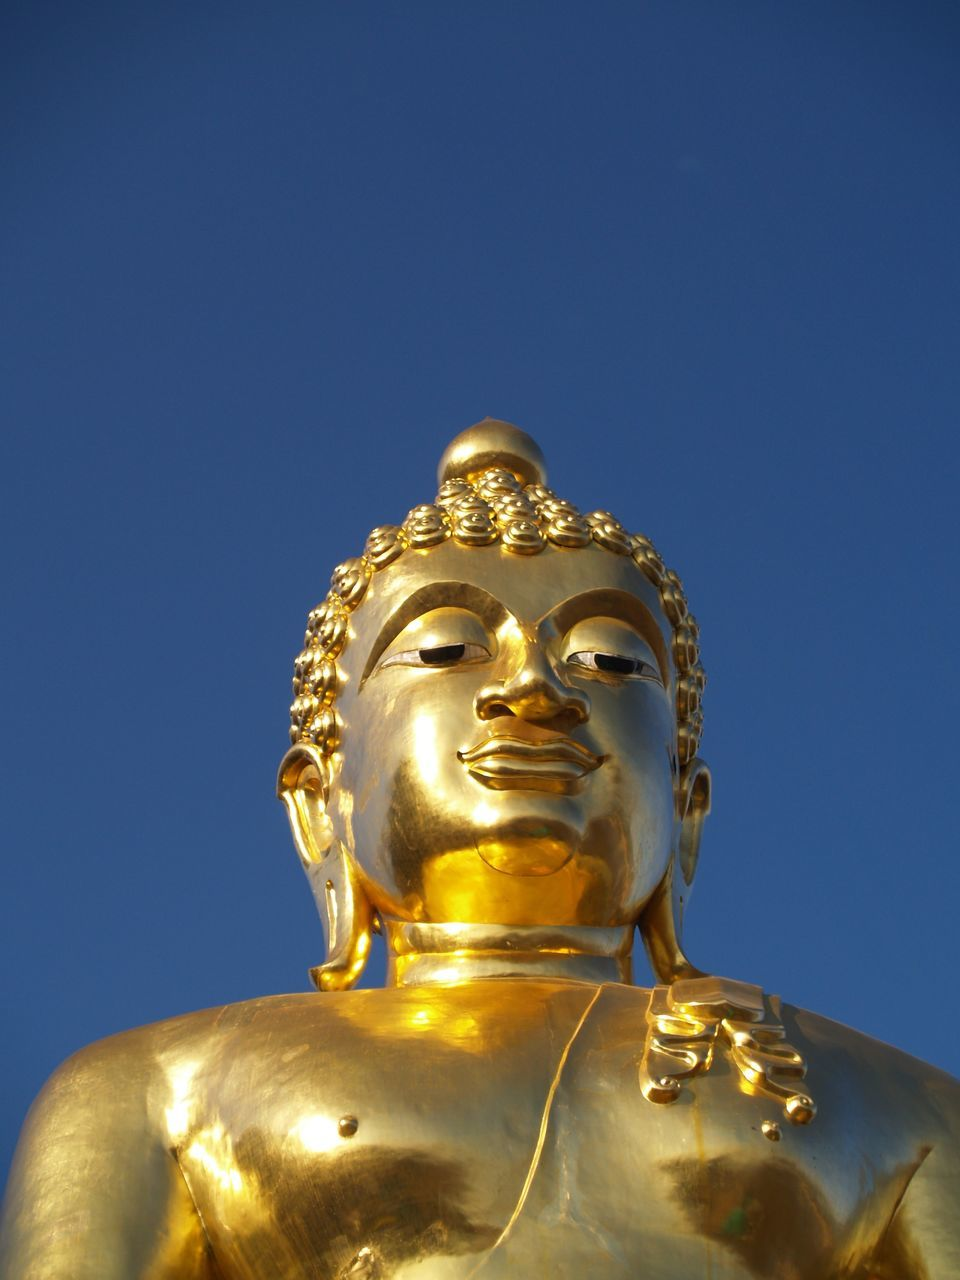 statue, gold colored, religion, sculpture, low angle view, golden color, spirituality, human representation, male likeness, clear sky, idol, copy space, no people, gold, golden, close-up, day